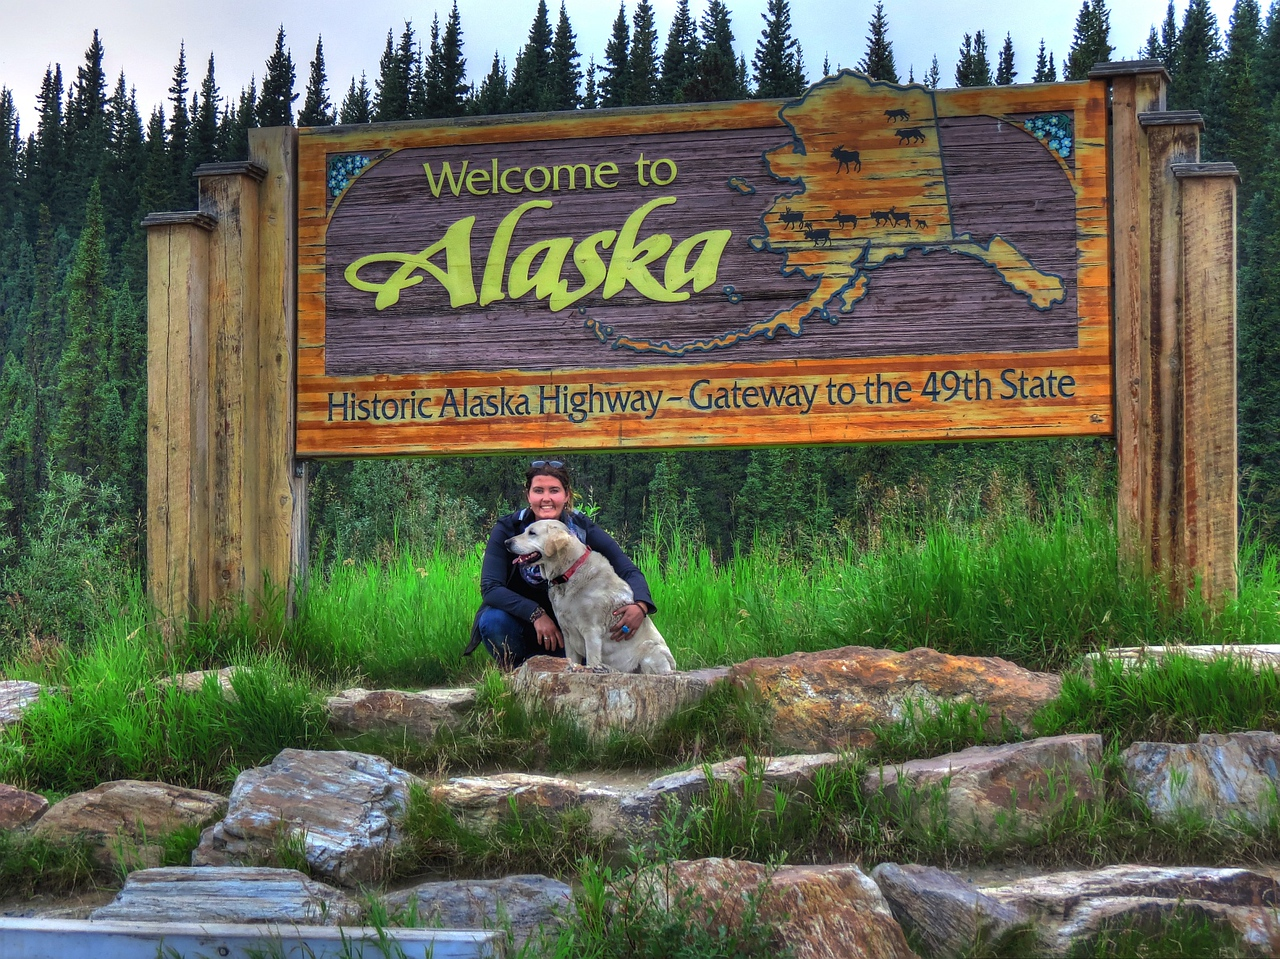 Mallory Paige and Baylor, happy to reach Alaska, even though not riding on/in the motorcycle at this time.